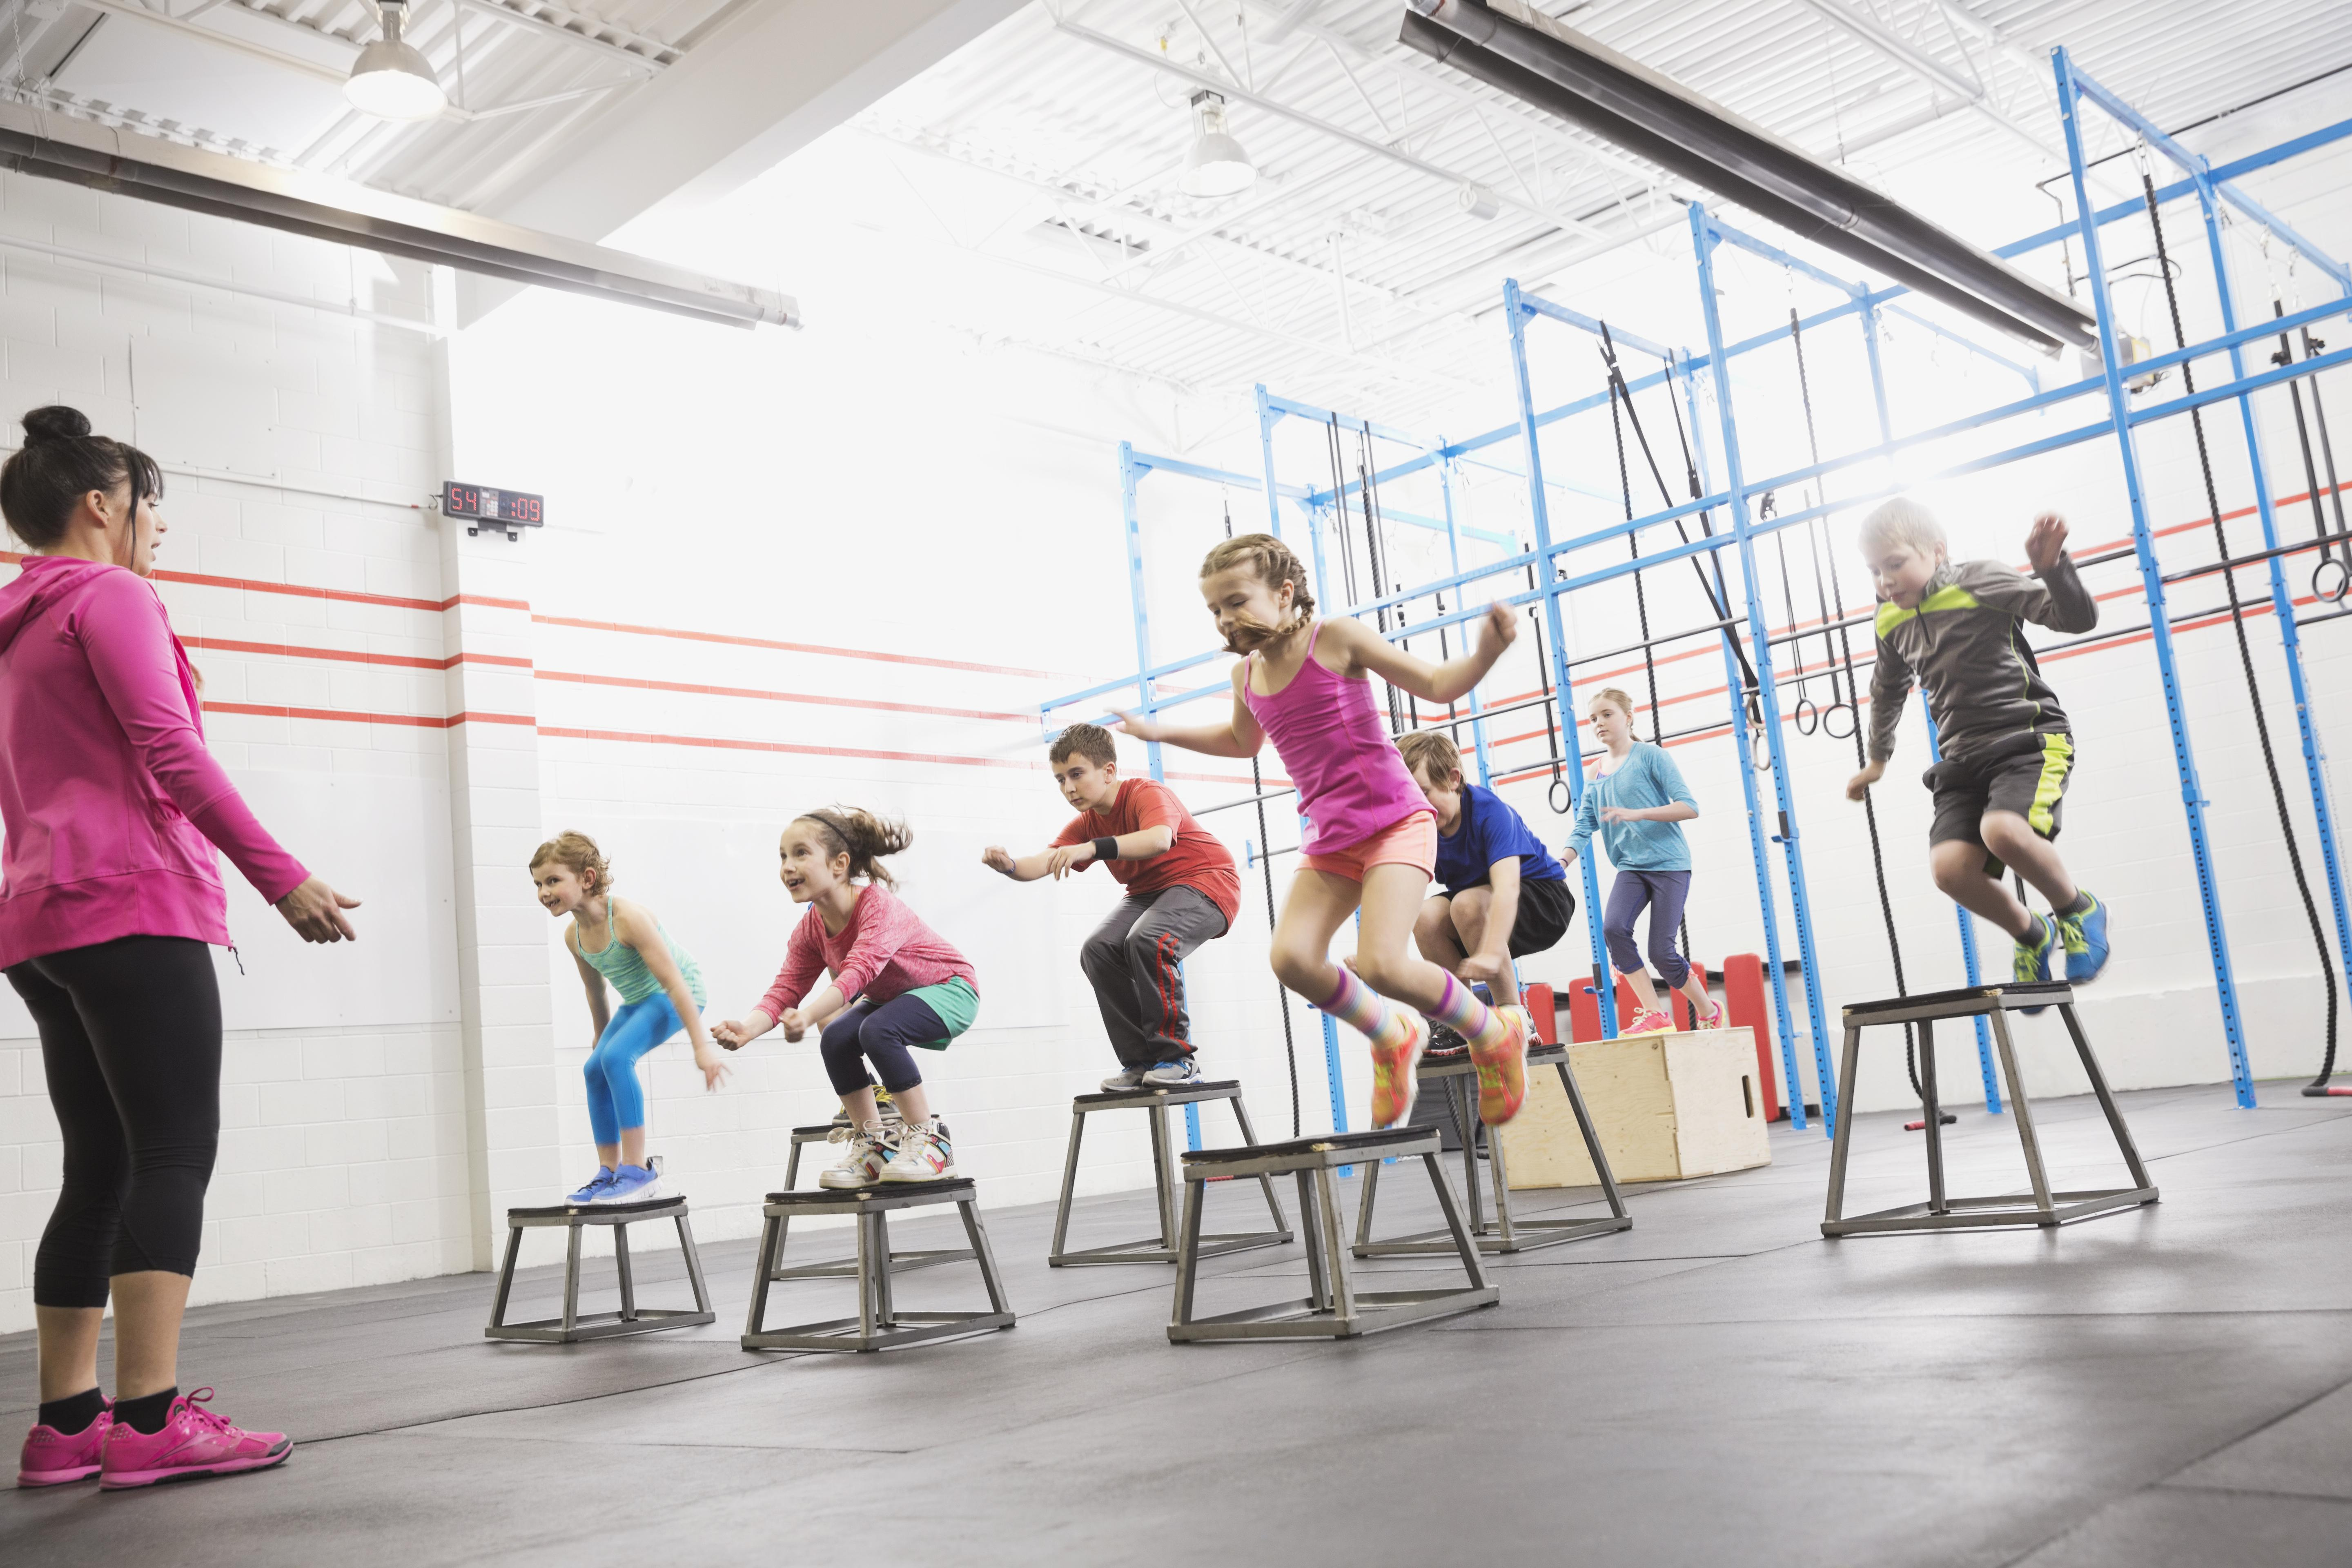 Children doing box jumps at gym